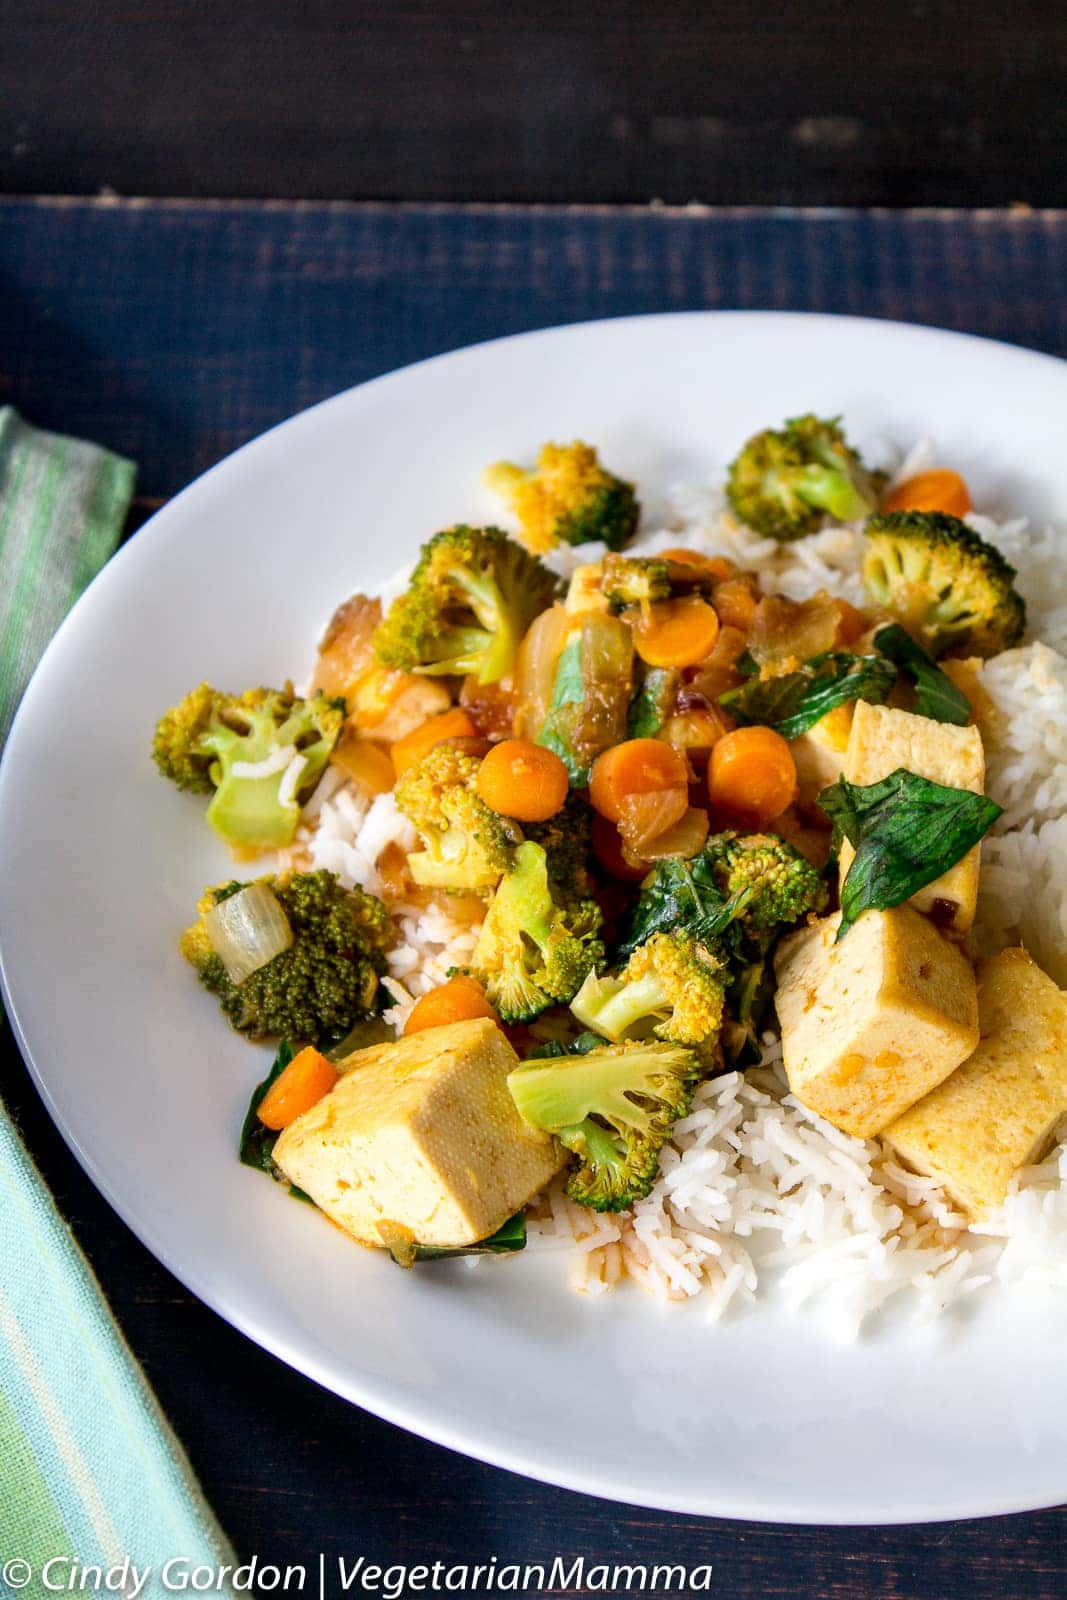 Curry Tofu with Broccoli and Rice